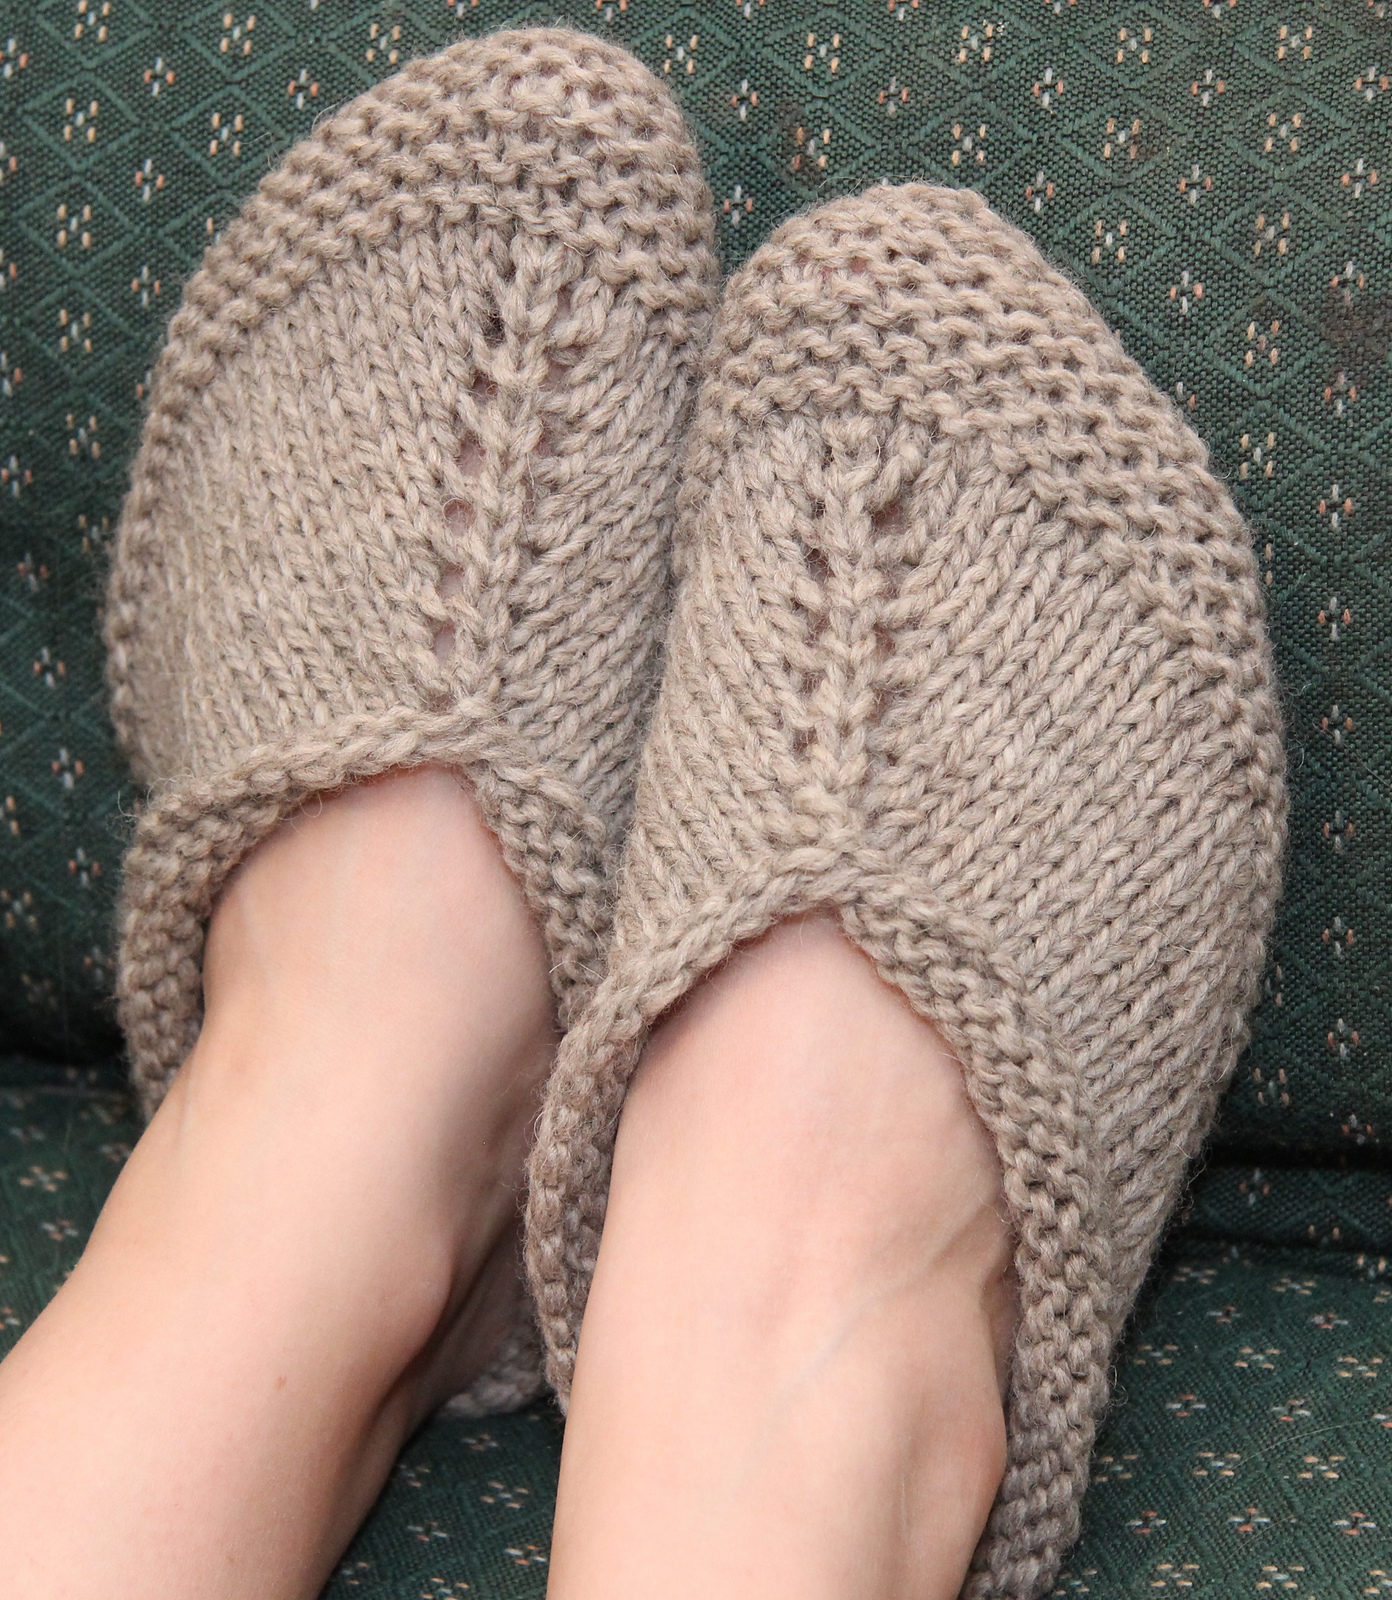 Knitting Pattern for Easy Peasy Slippers